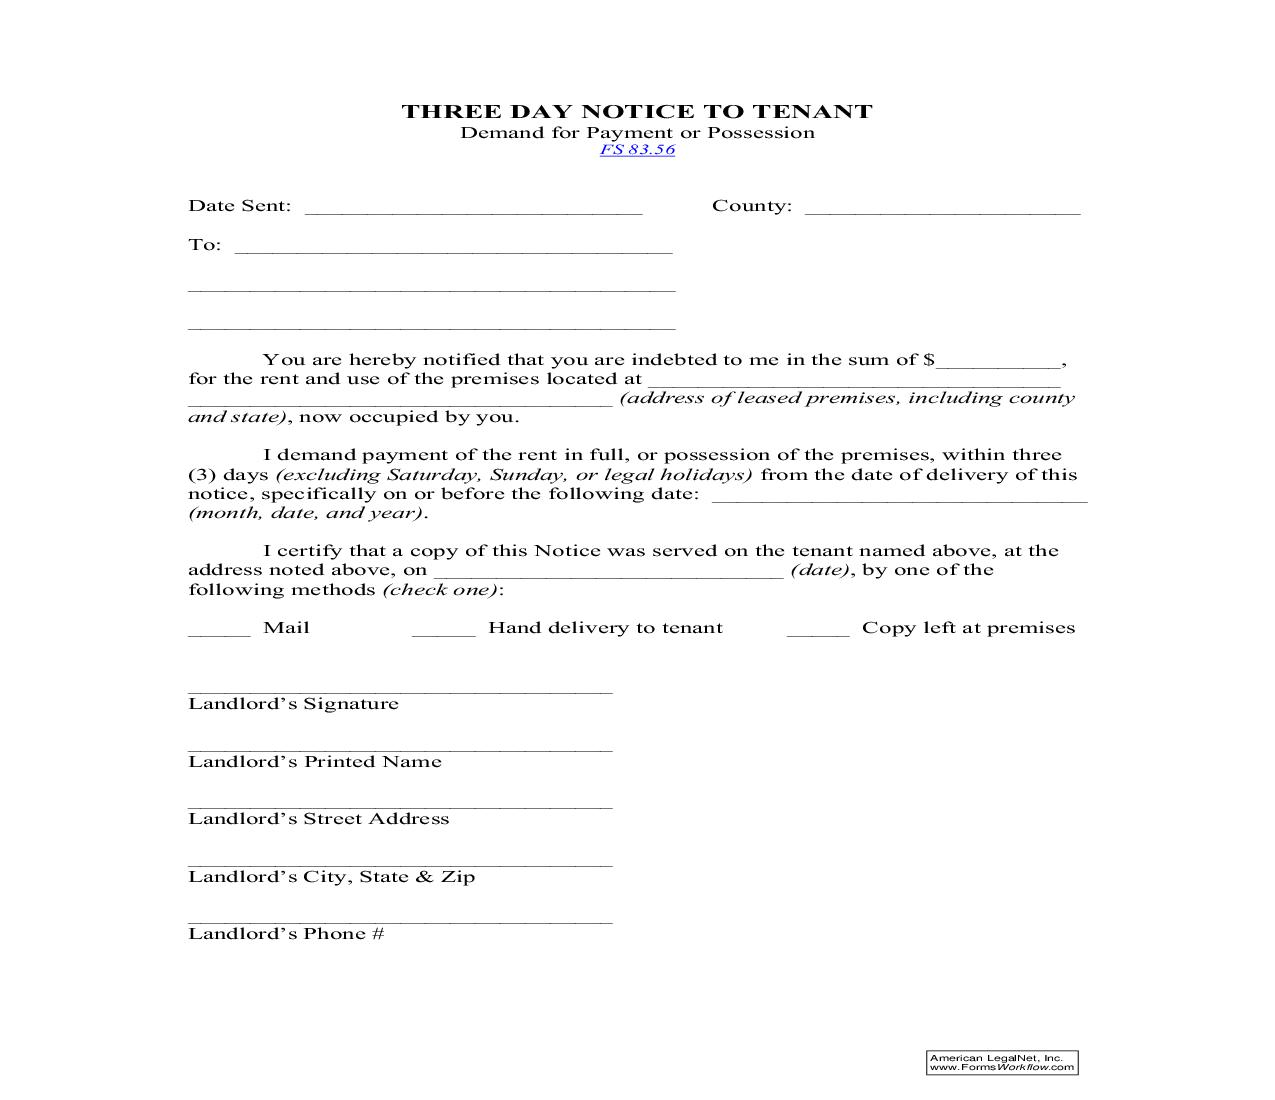 Three Day Notice To Tenant (Demand For Payment Or Possession) | Pdf Fpdf Doc Docx | Florida